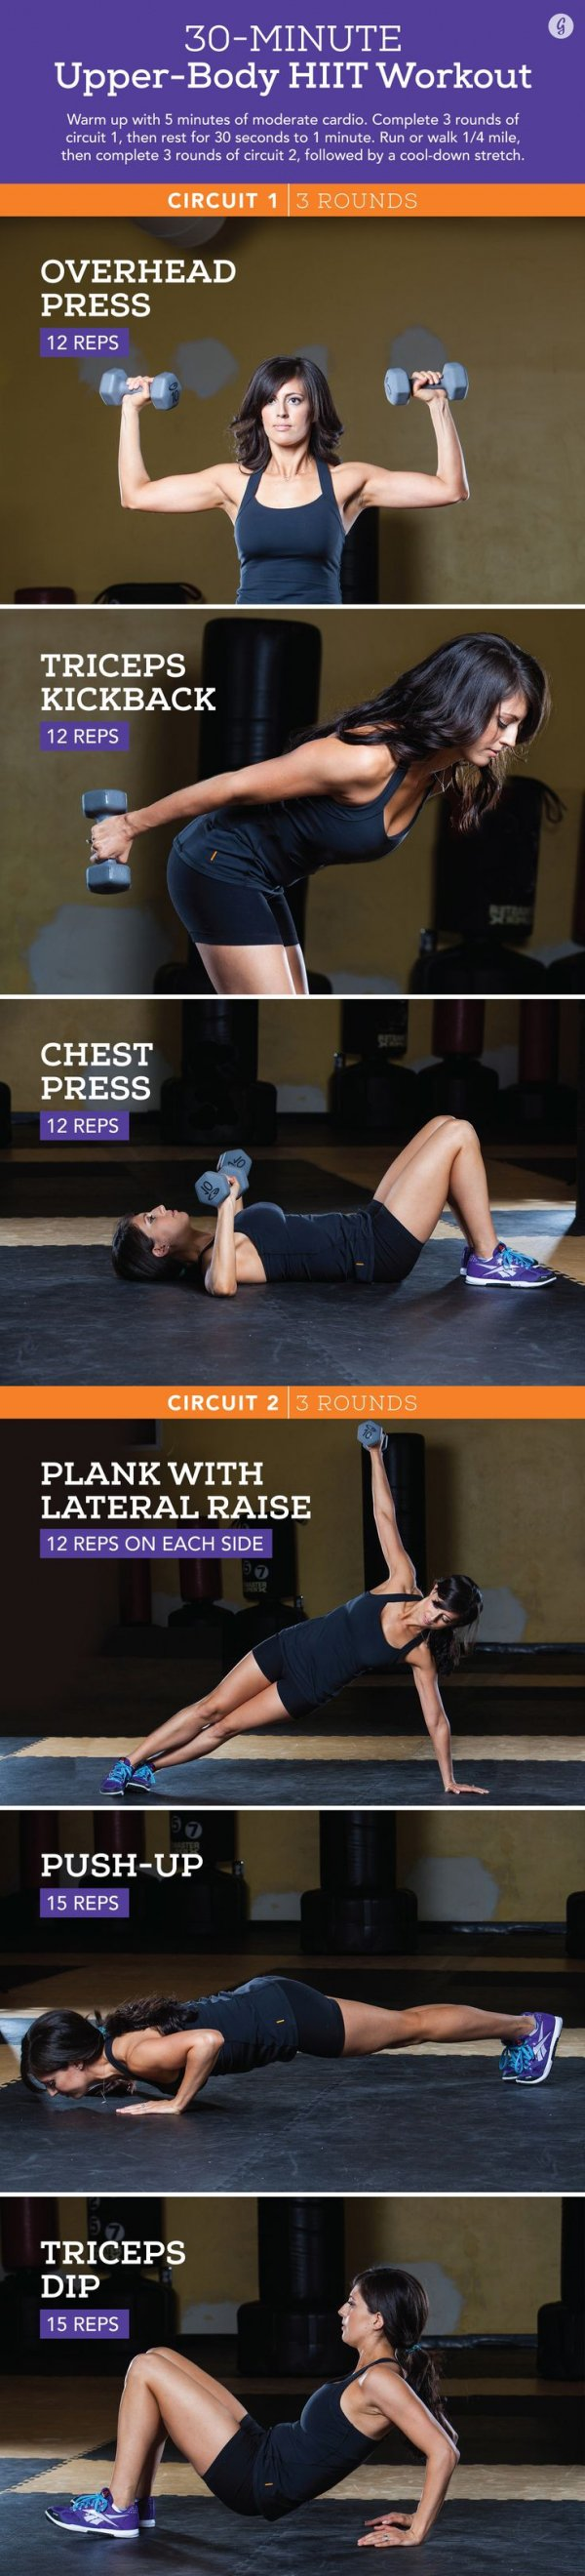 sports,physical fitness,screenshot,30-MINUTE,Upper-Body,